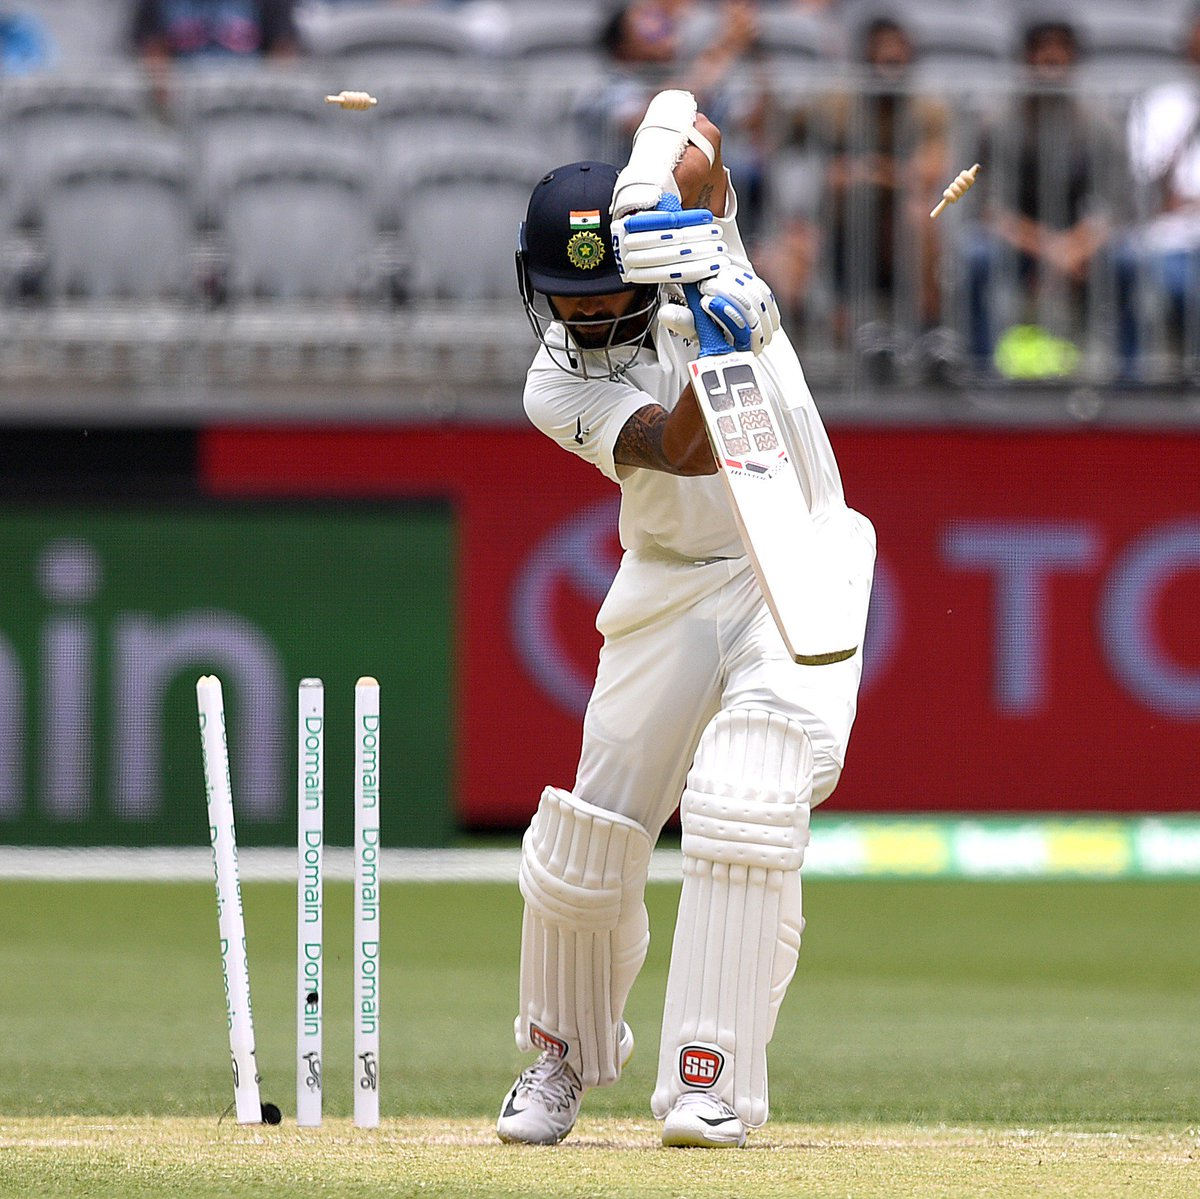 cricket.com.au's photo on Murali Vijay